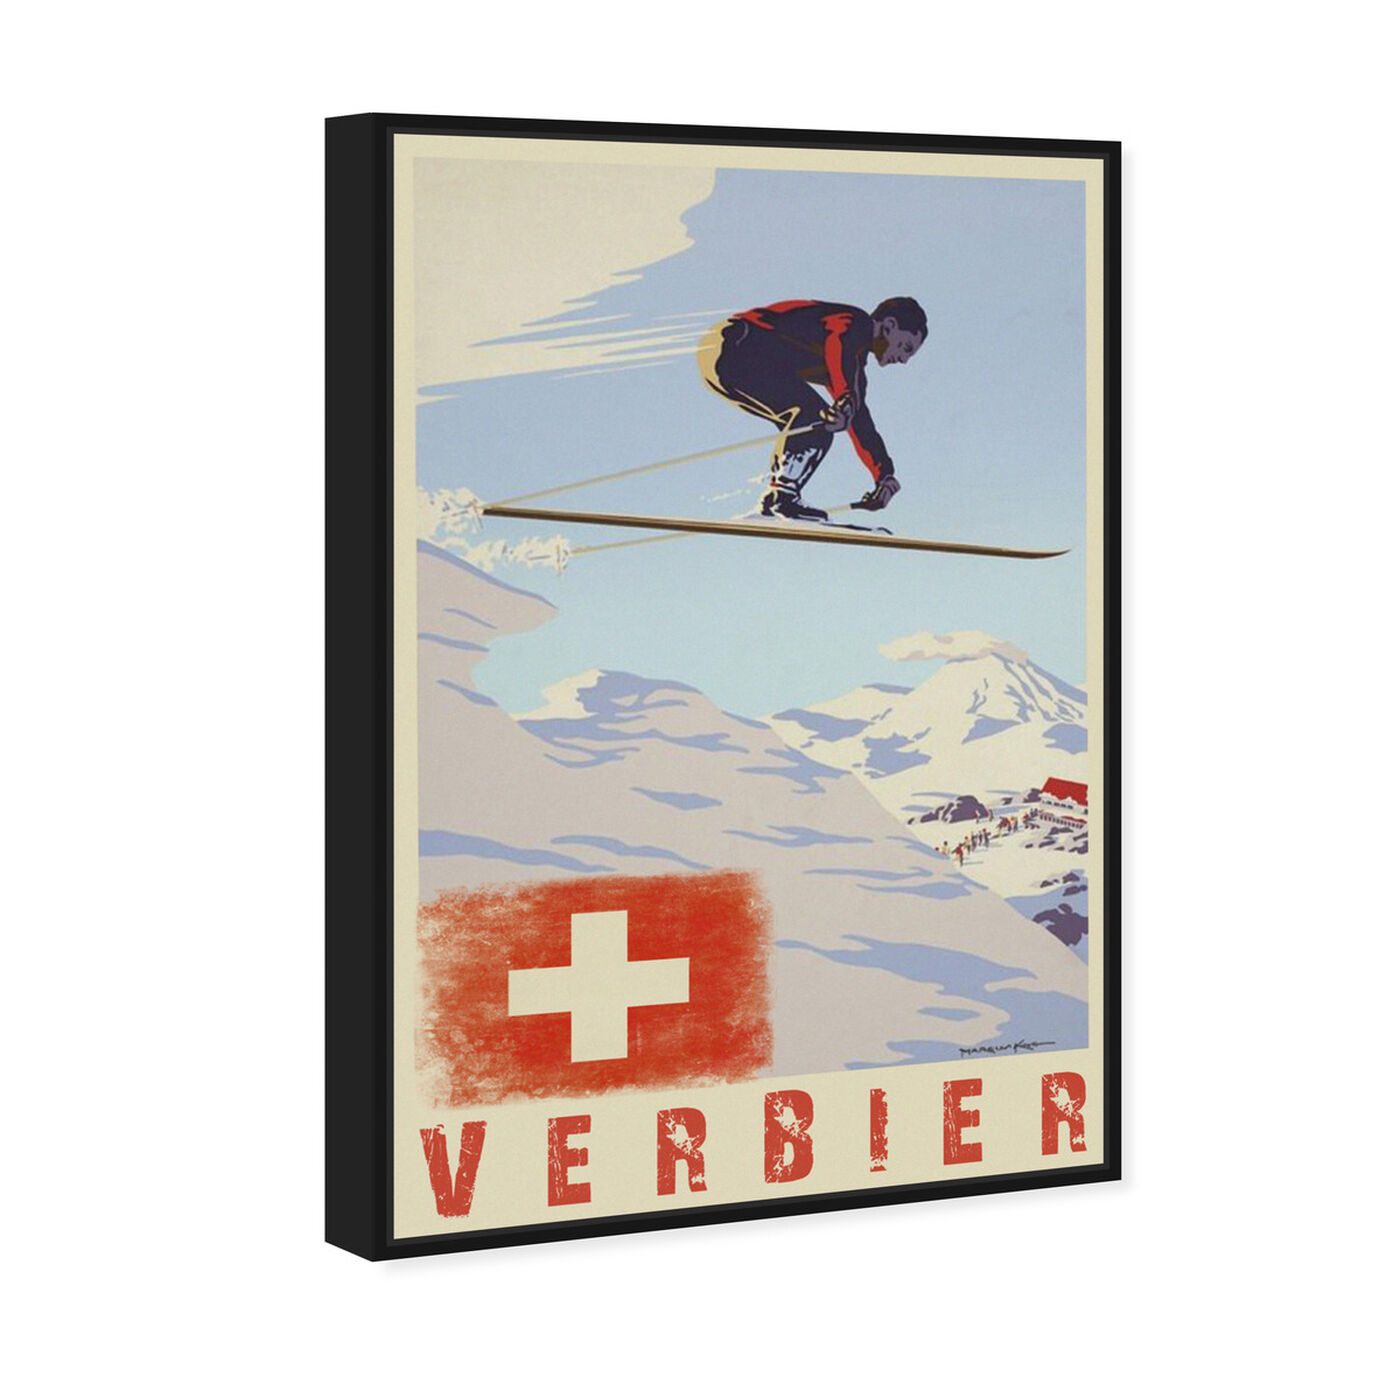 Angled view of Verbier featuring advertising and posters art.